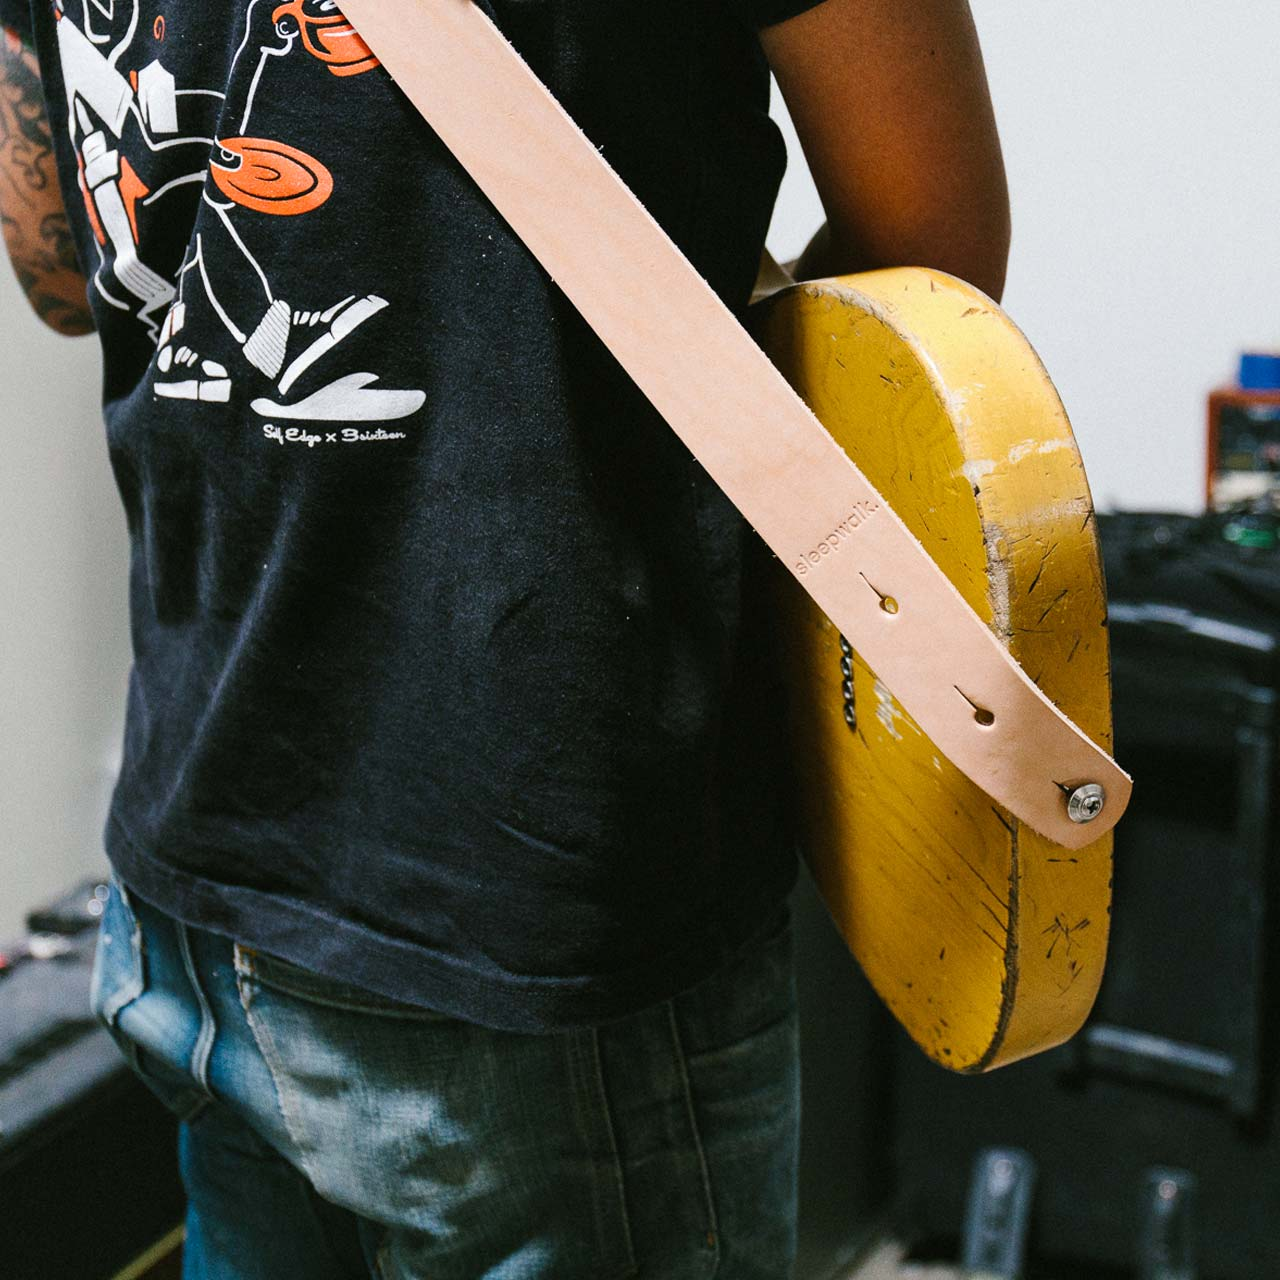 TT Signature Guitar Strap - Black Premium Harness